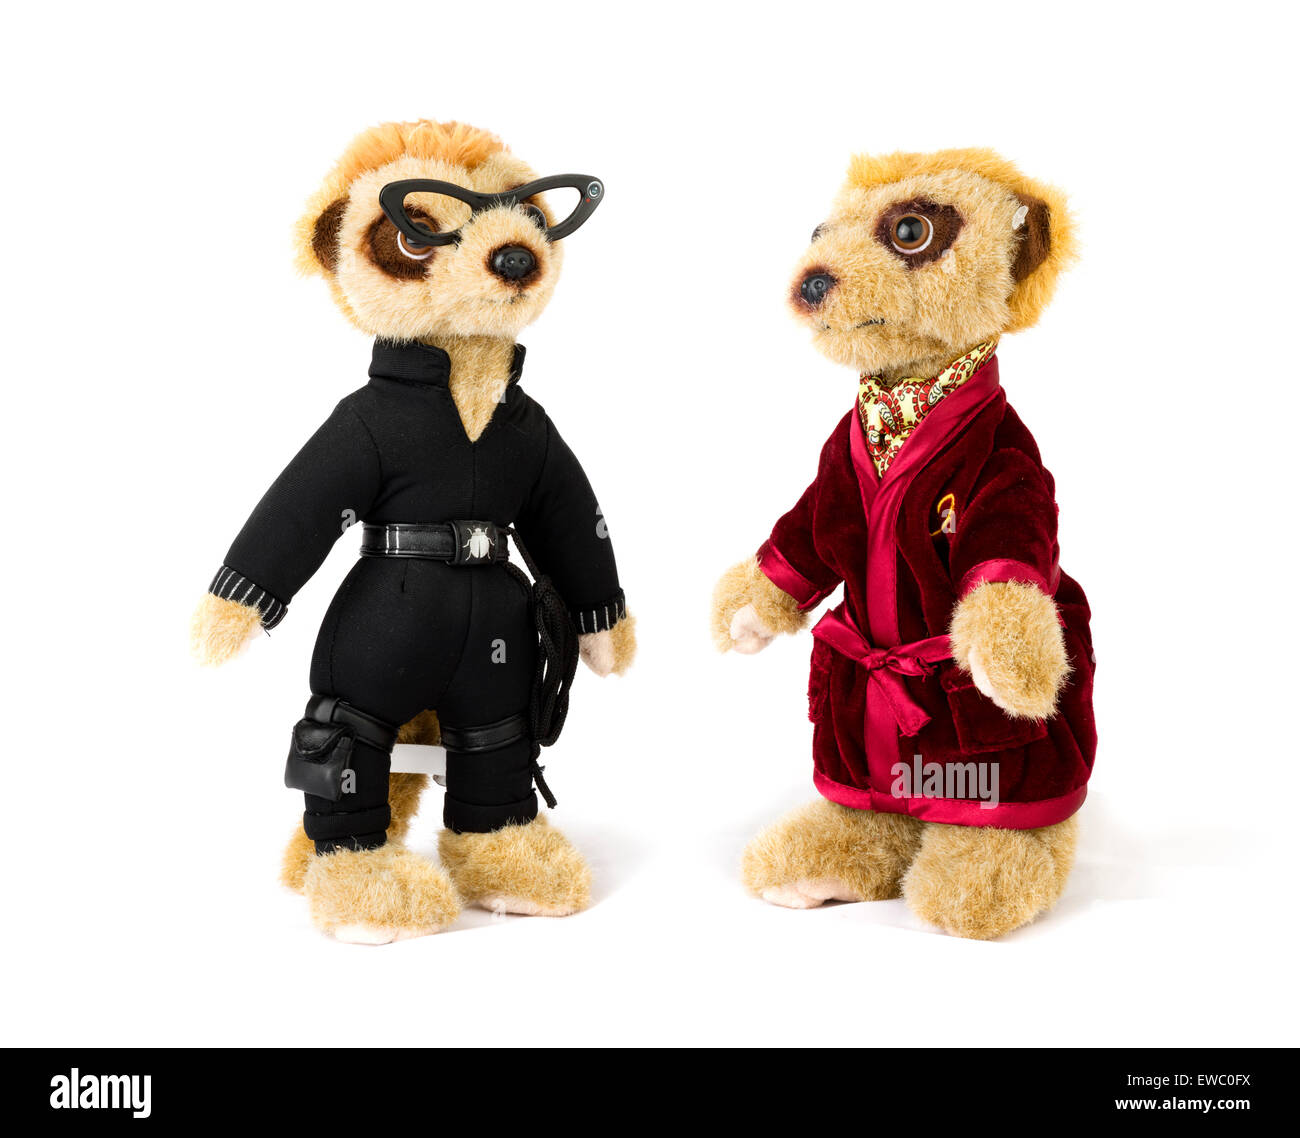 Aleksandr Orlov and Agent Maiya meerkat toys from Comparethemarket.com price comparison website, UK - Stock Image